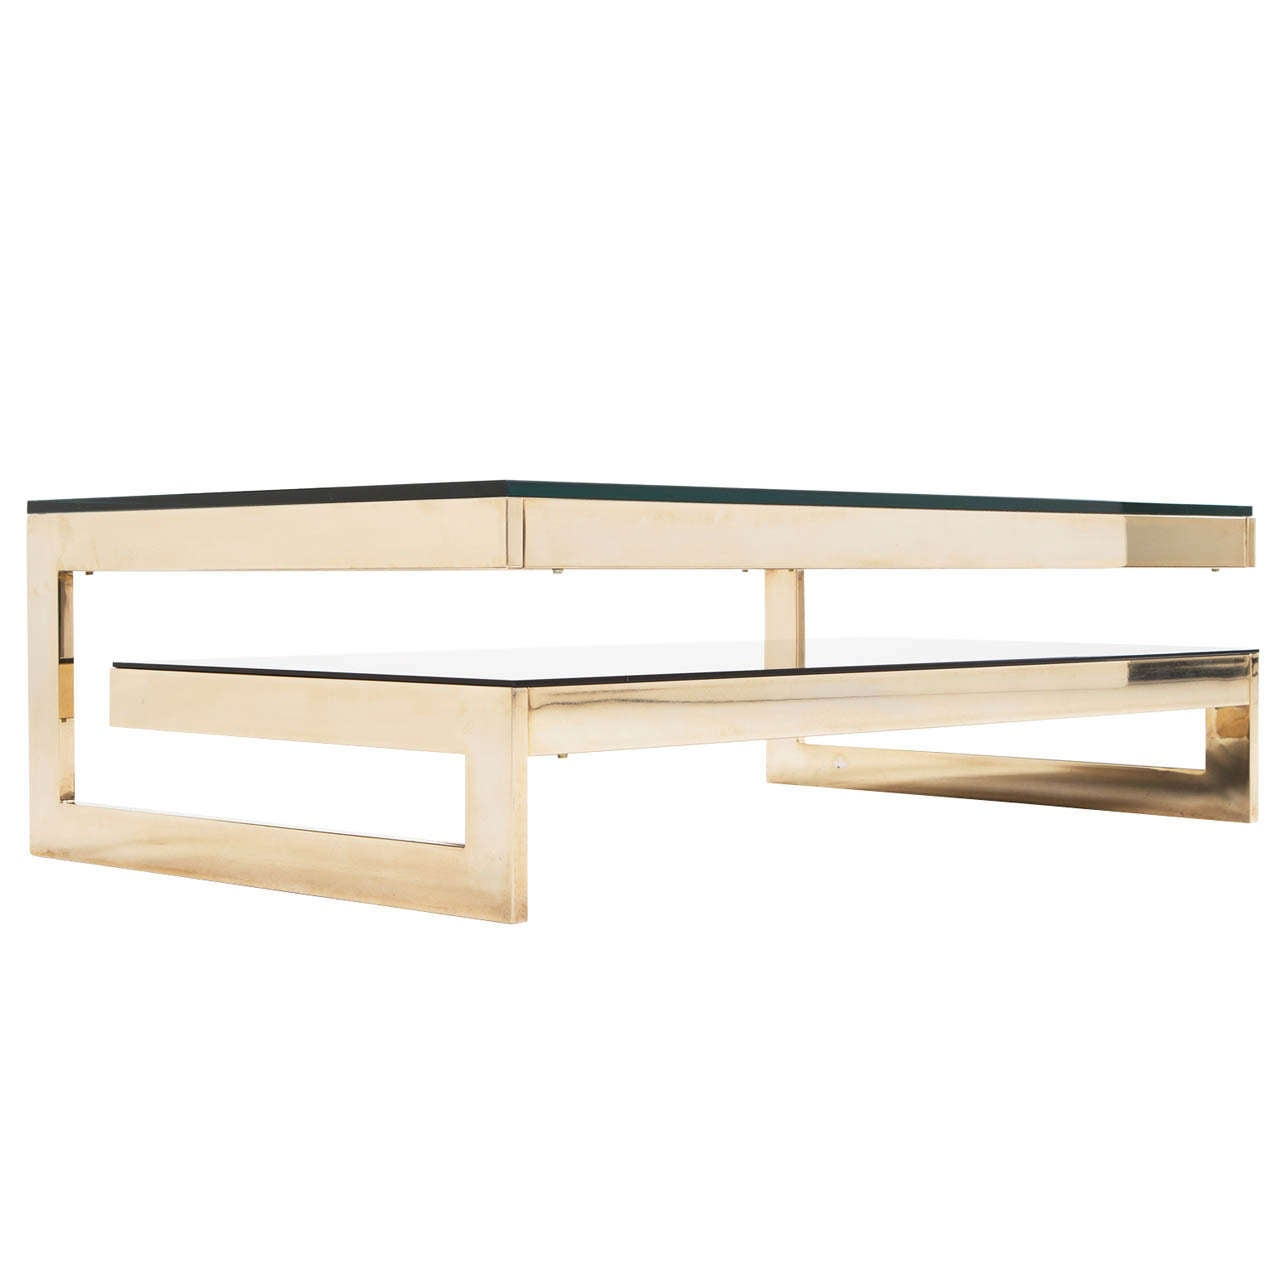 Roche bobois gold plated two tier coffee table at 1stdibs Roche bobois coffee table